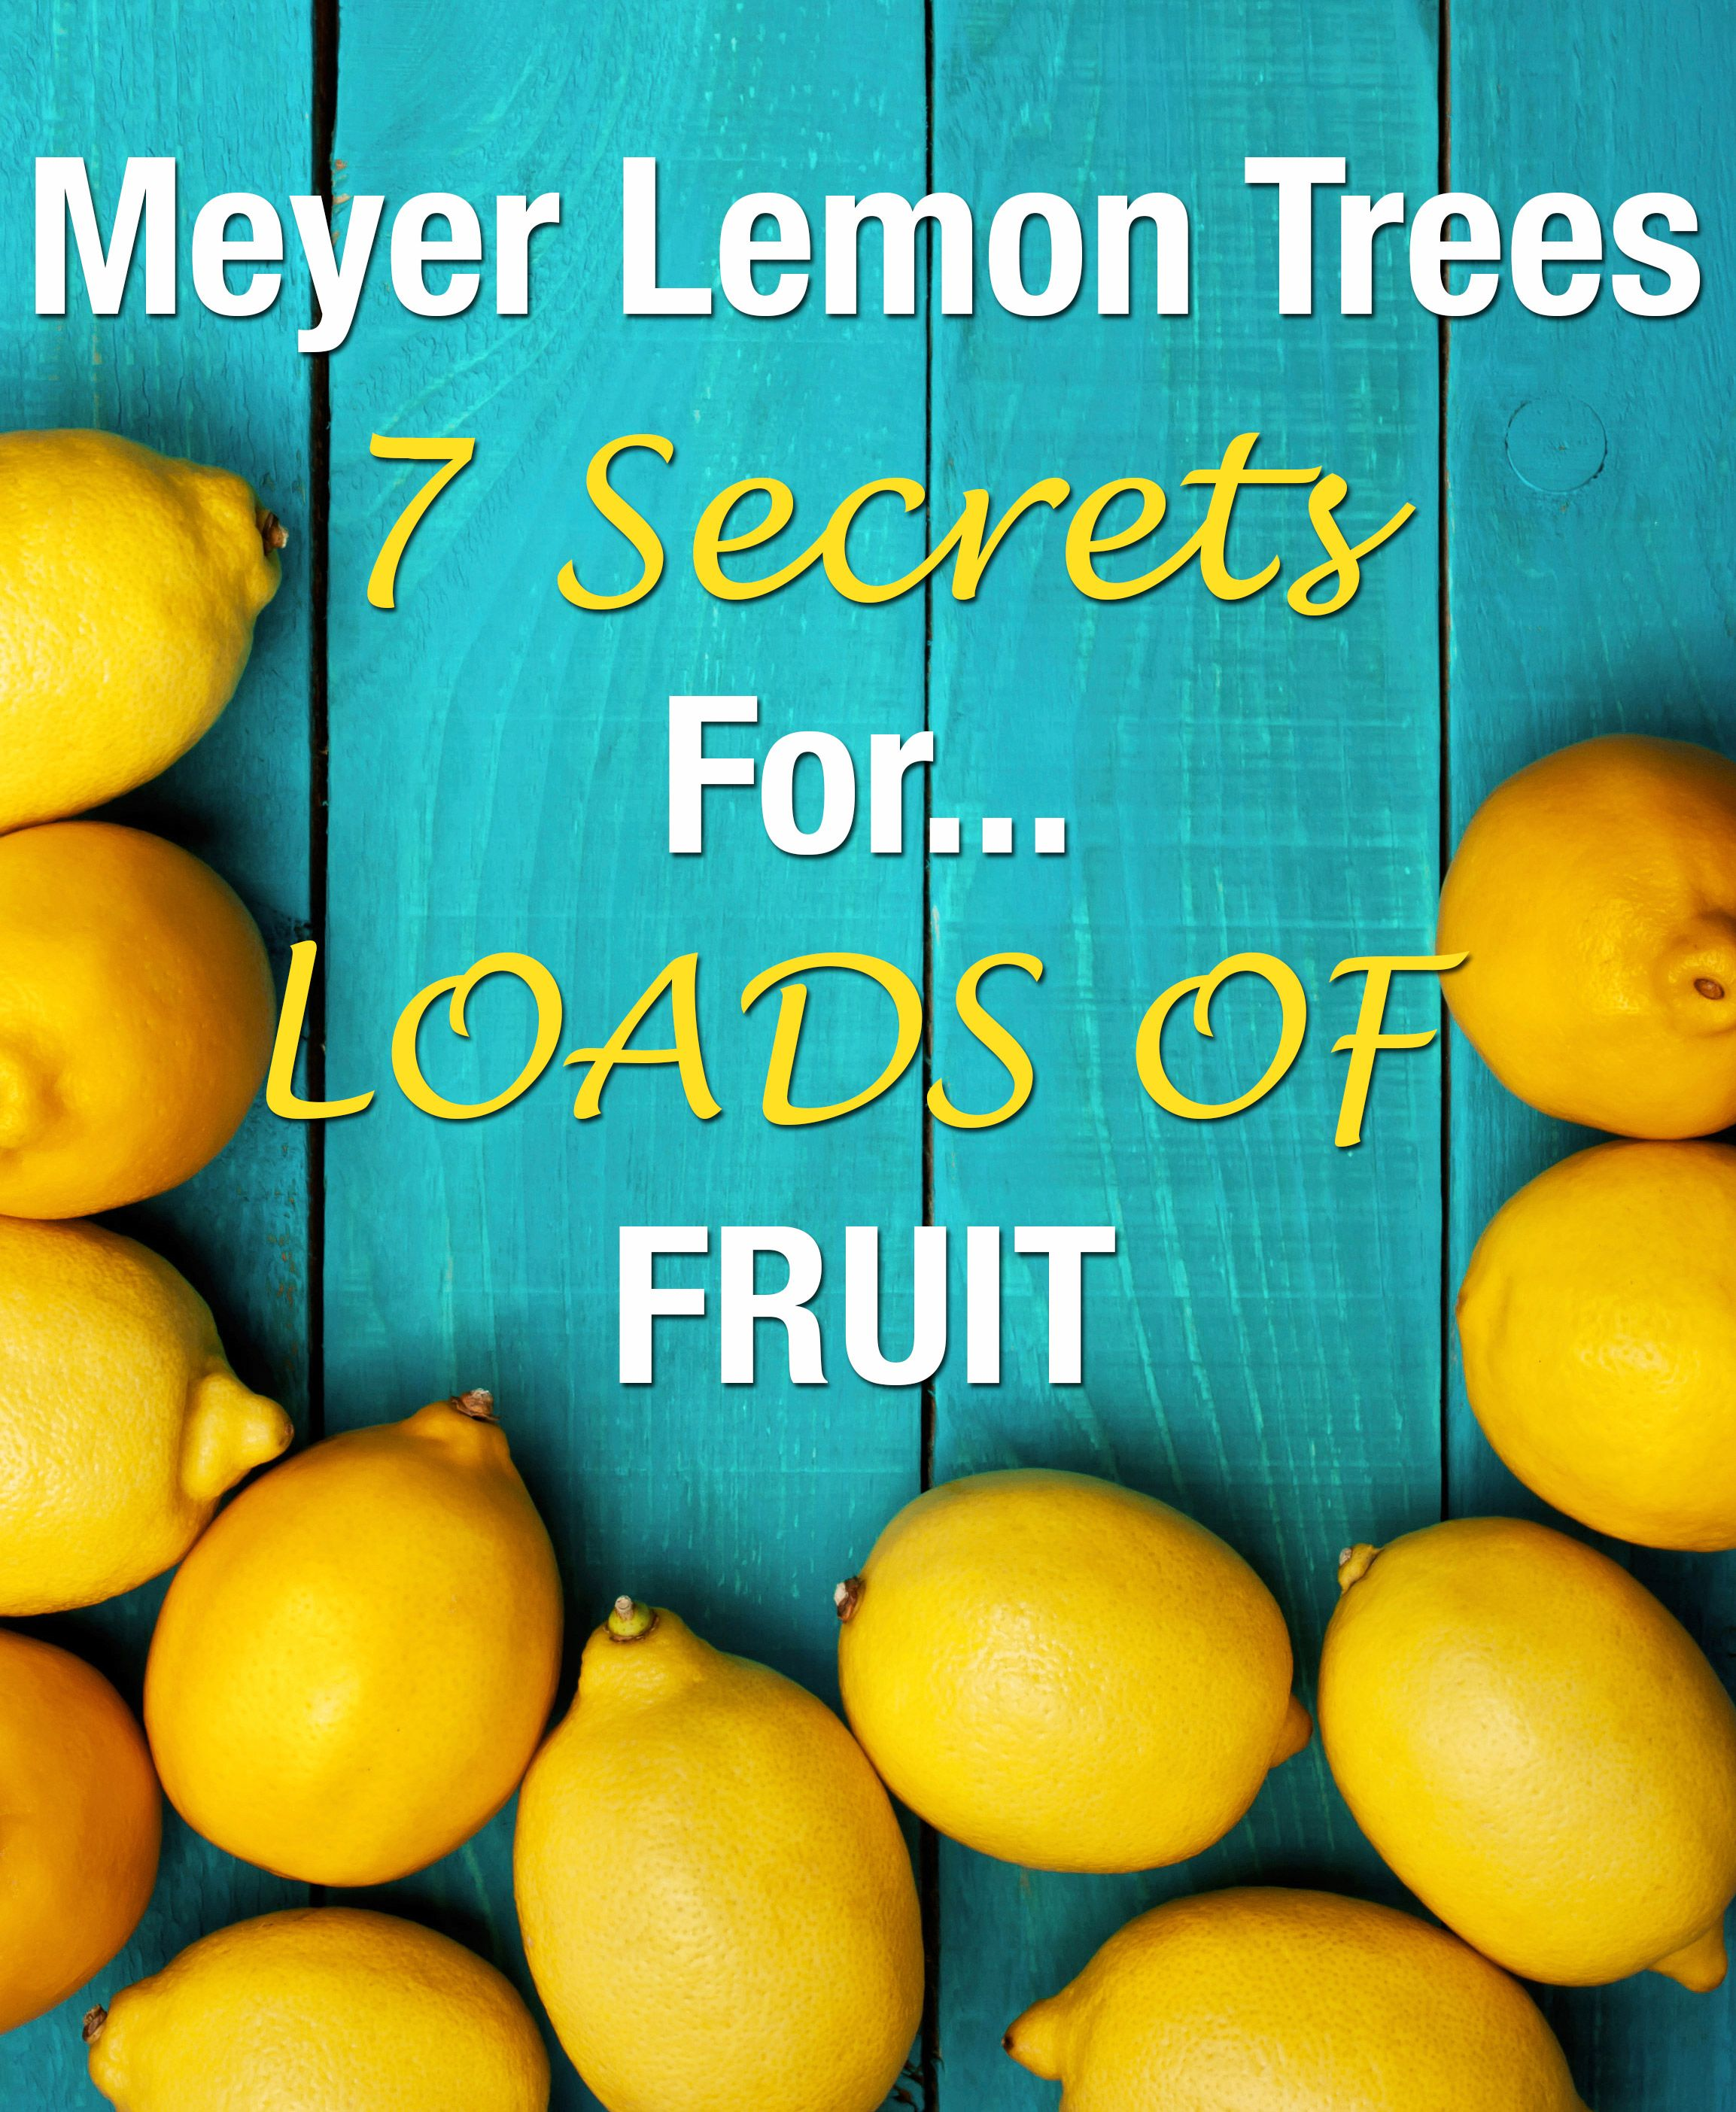 Meyer Lemon Trees 7 Secrets For Loads Of Fruit Meyer Lemon Tree Lemon Tree Lemon Tree Potted